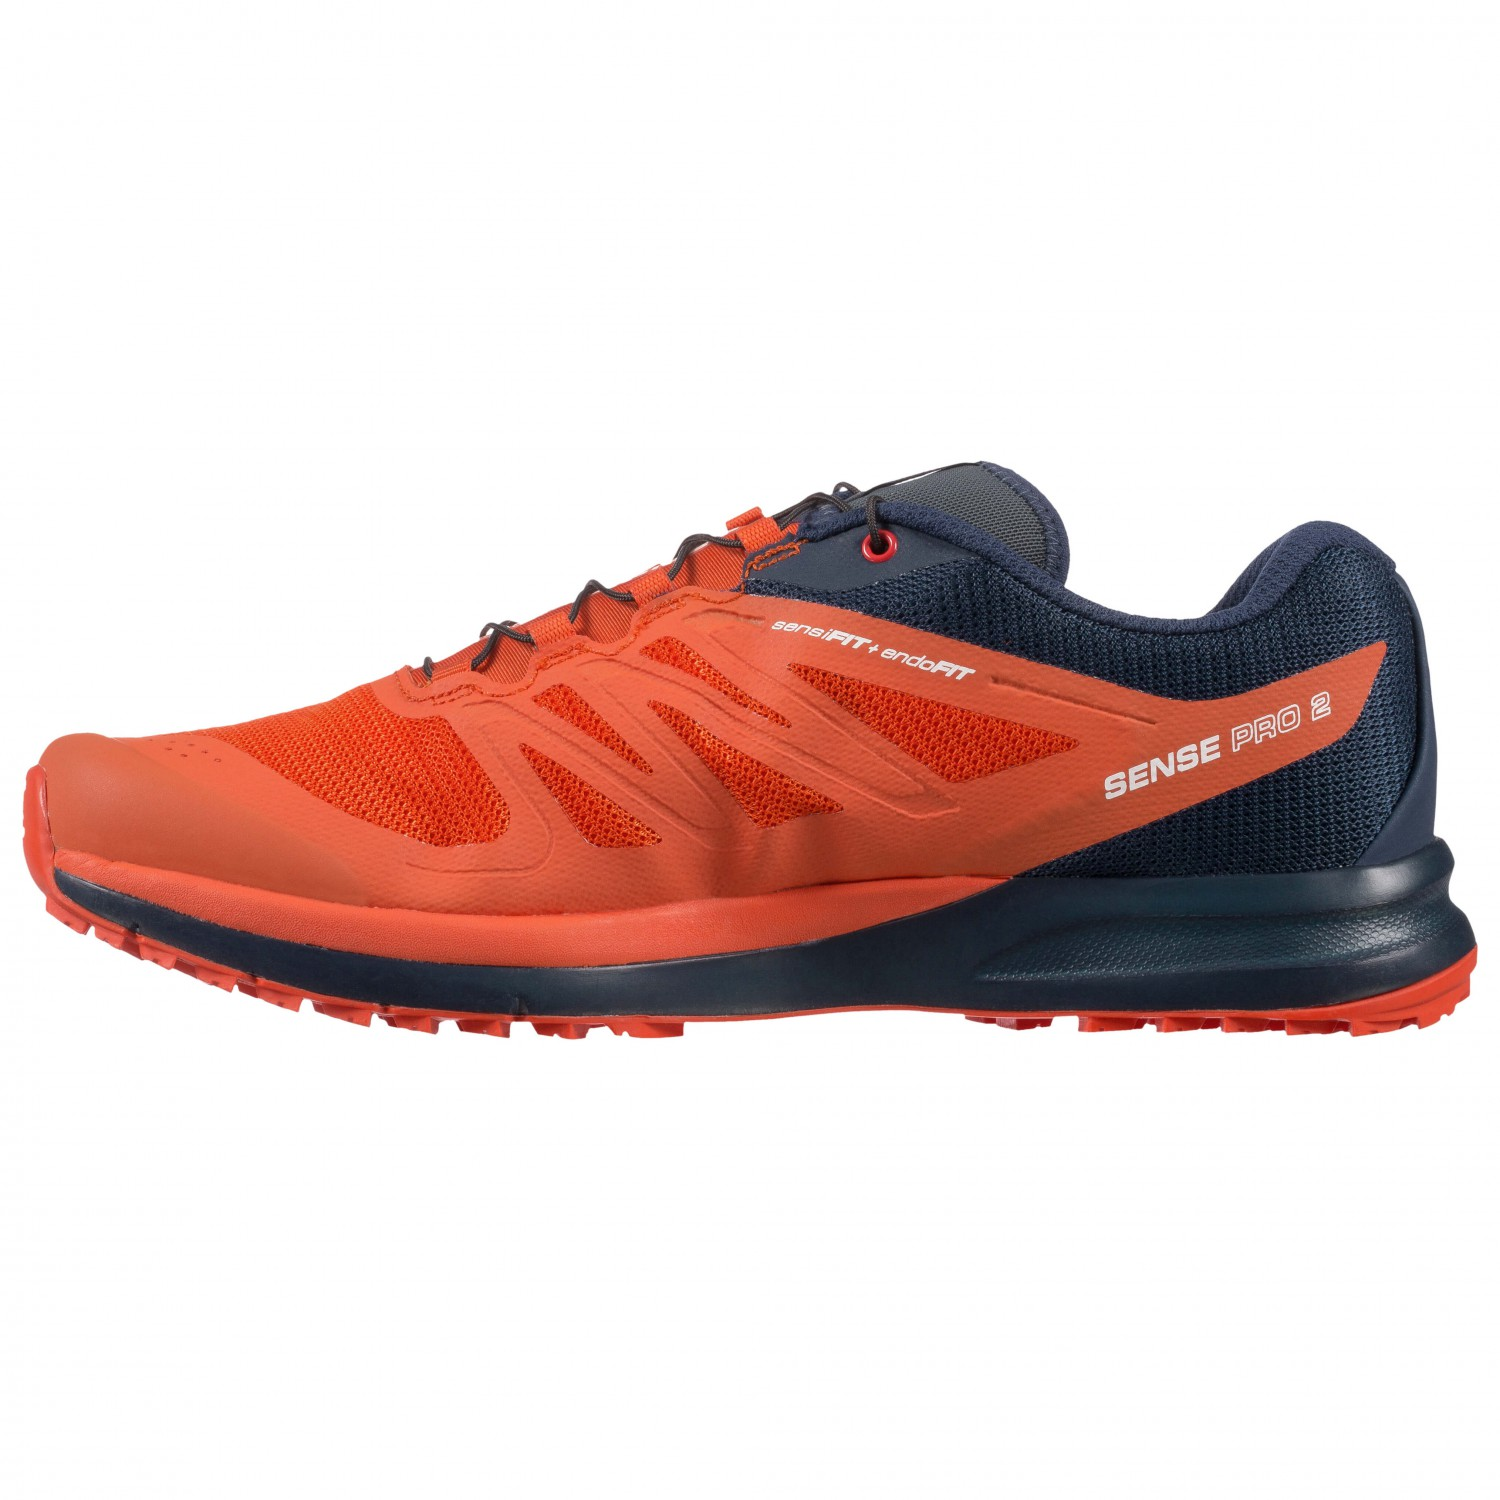 1f0fd094 Salomon - Sense Pro 2 - Running shoes - Fiery Red / Night Sky / Sulphur  Spring | 9 (UK)